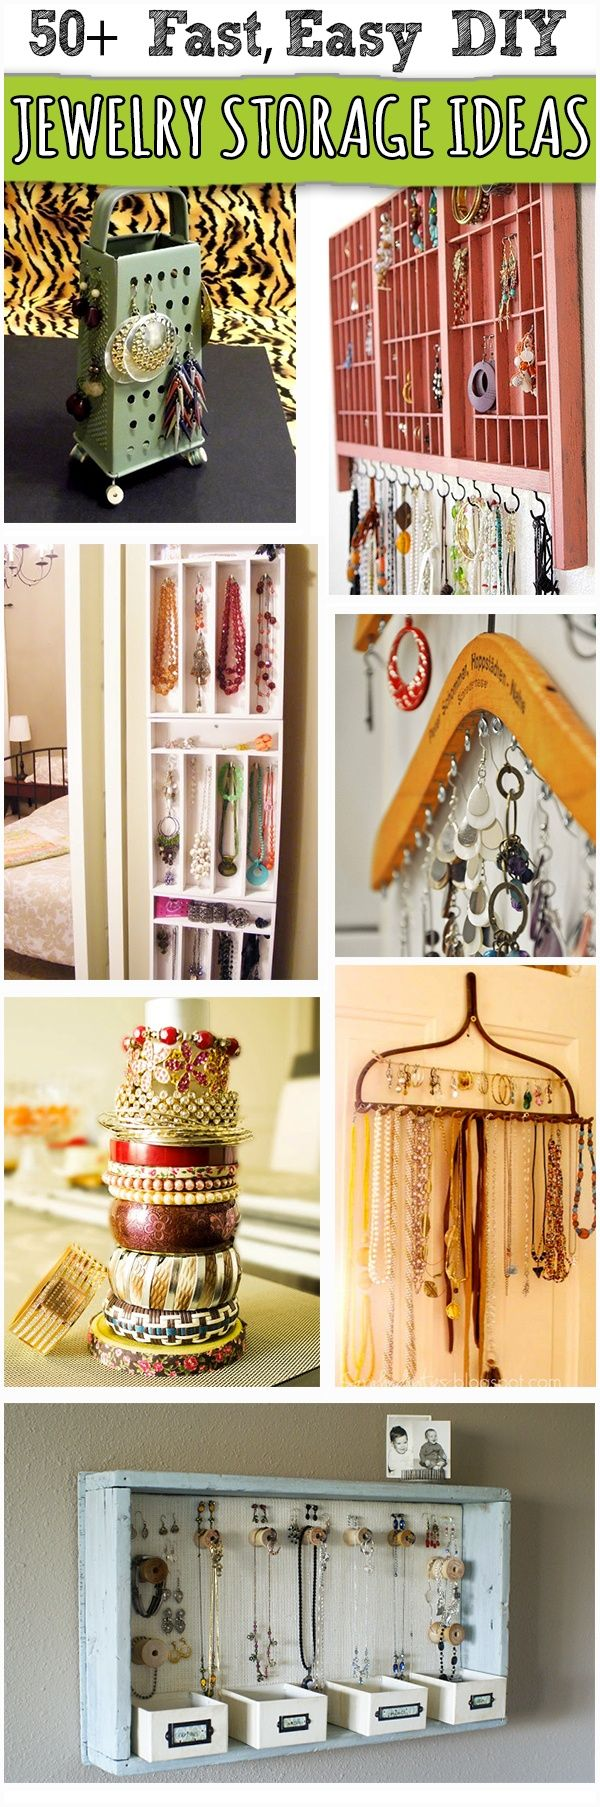 Bracelet Organizer Ideas 775 Best Jewelry Display Ideas Images On Pinterest Display Ideas